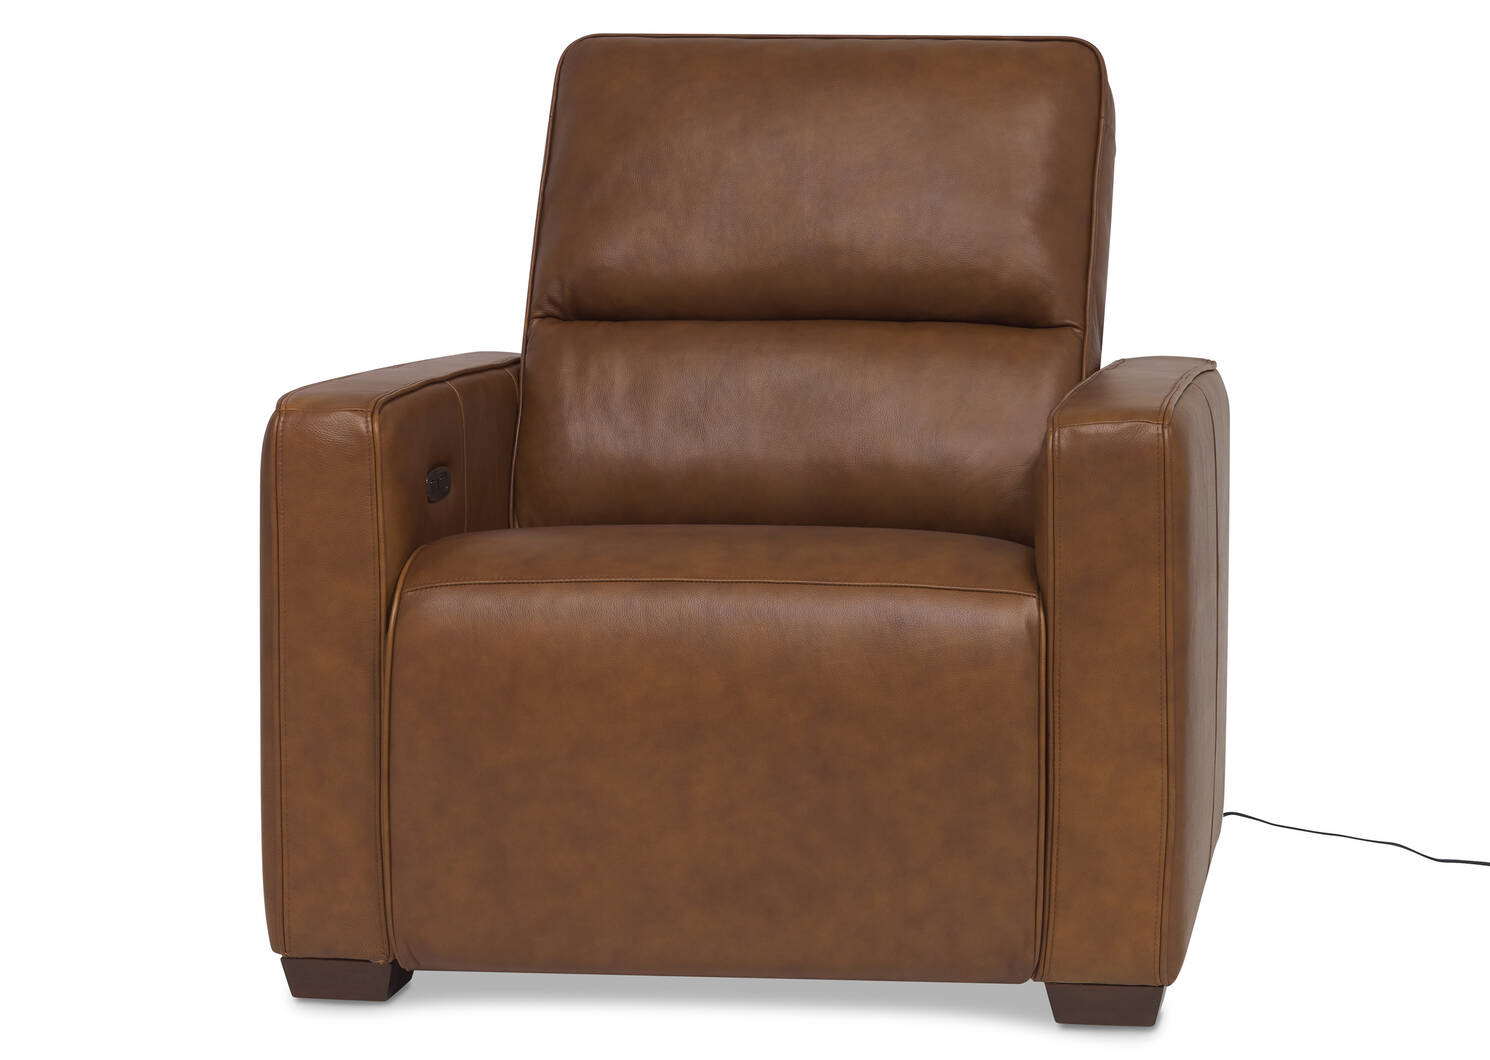 Reese Leather Recliner -Arlo Rum